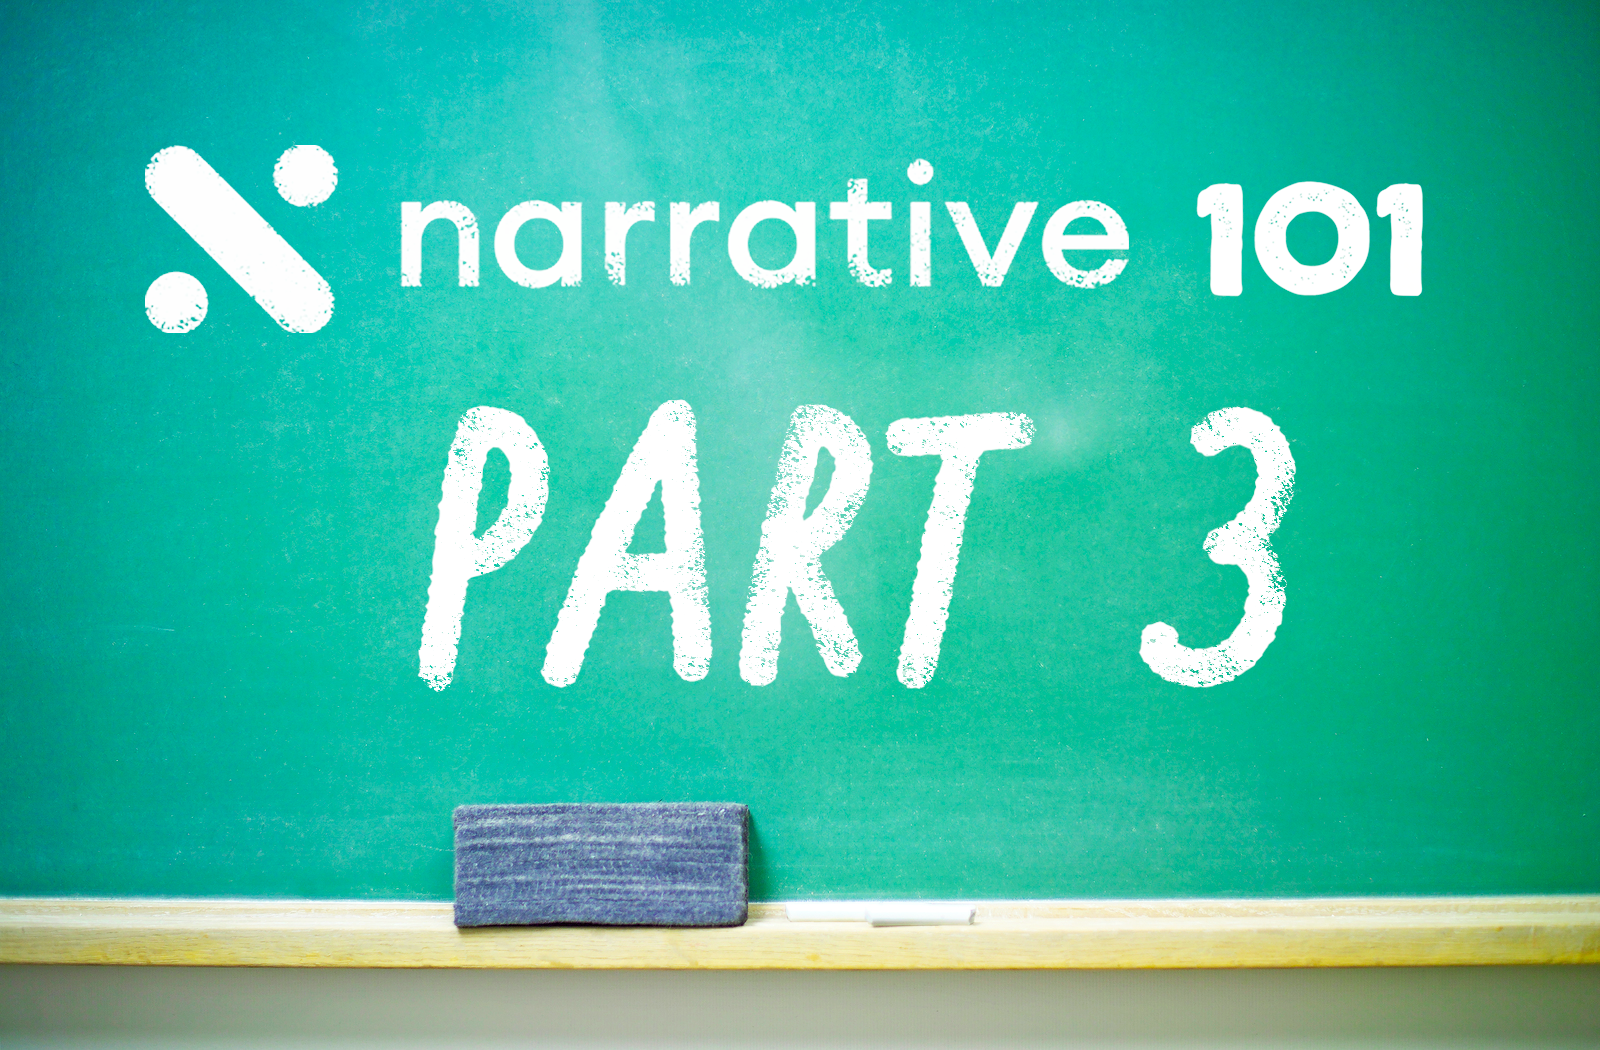 Narrative 101: The Future of Narrative [Video]